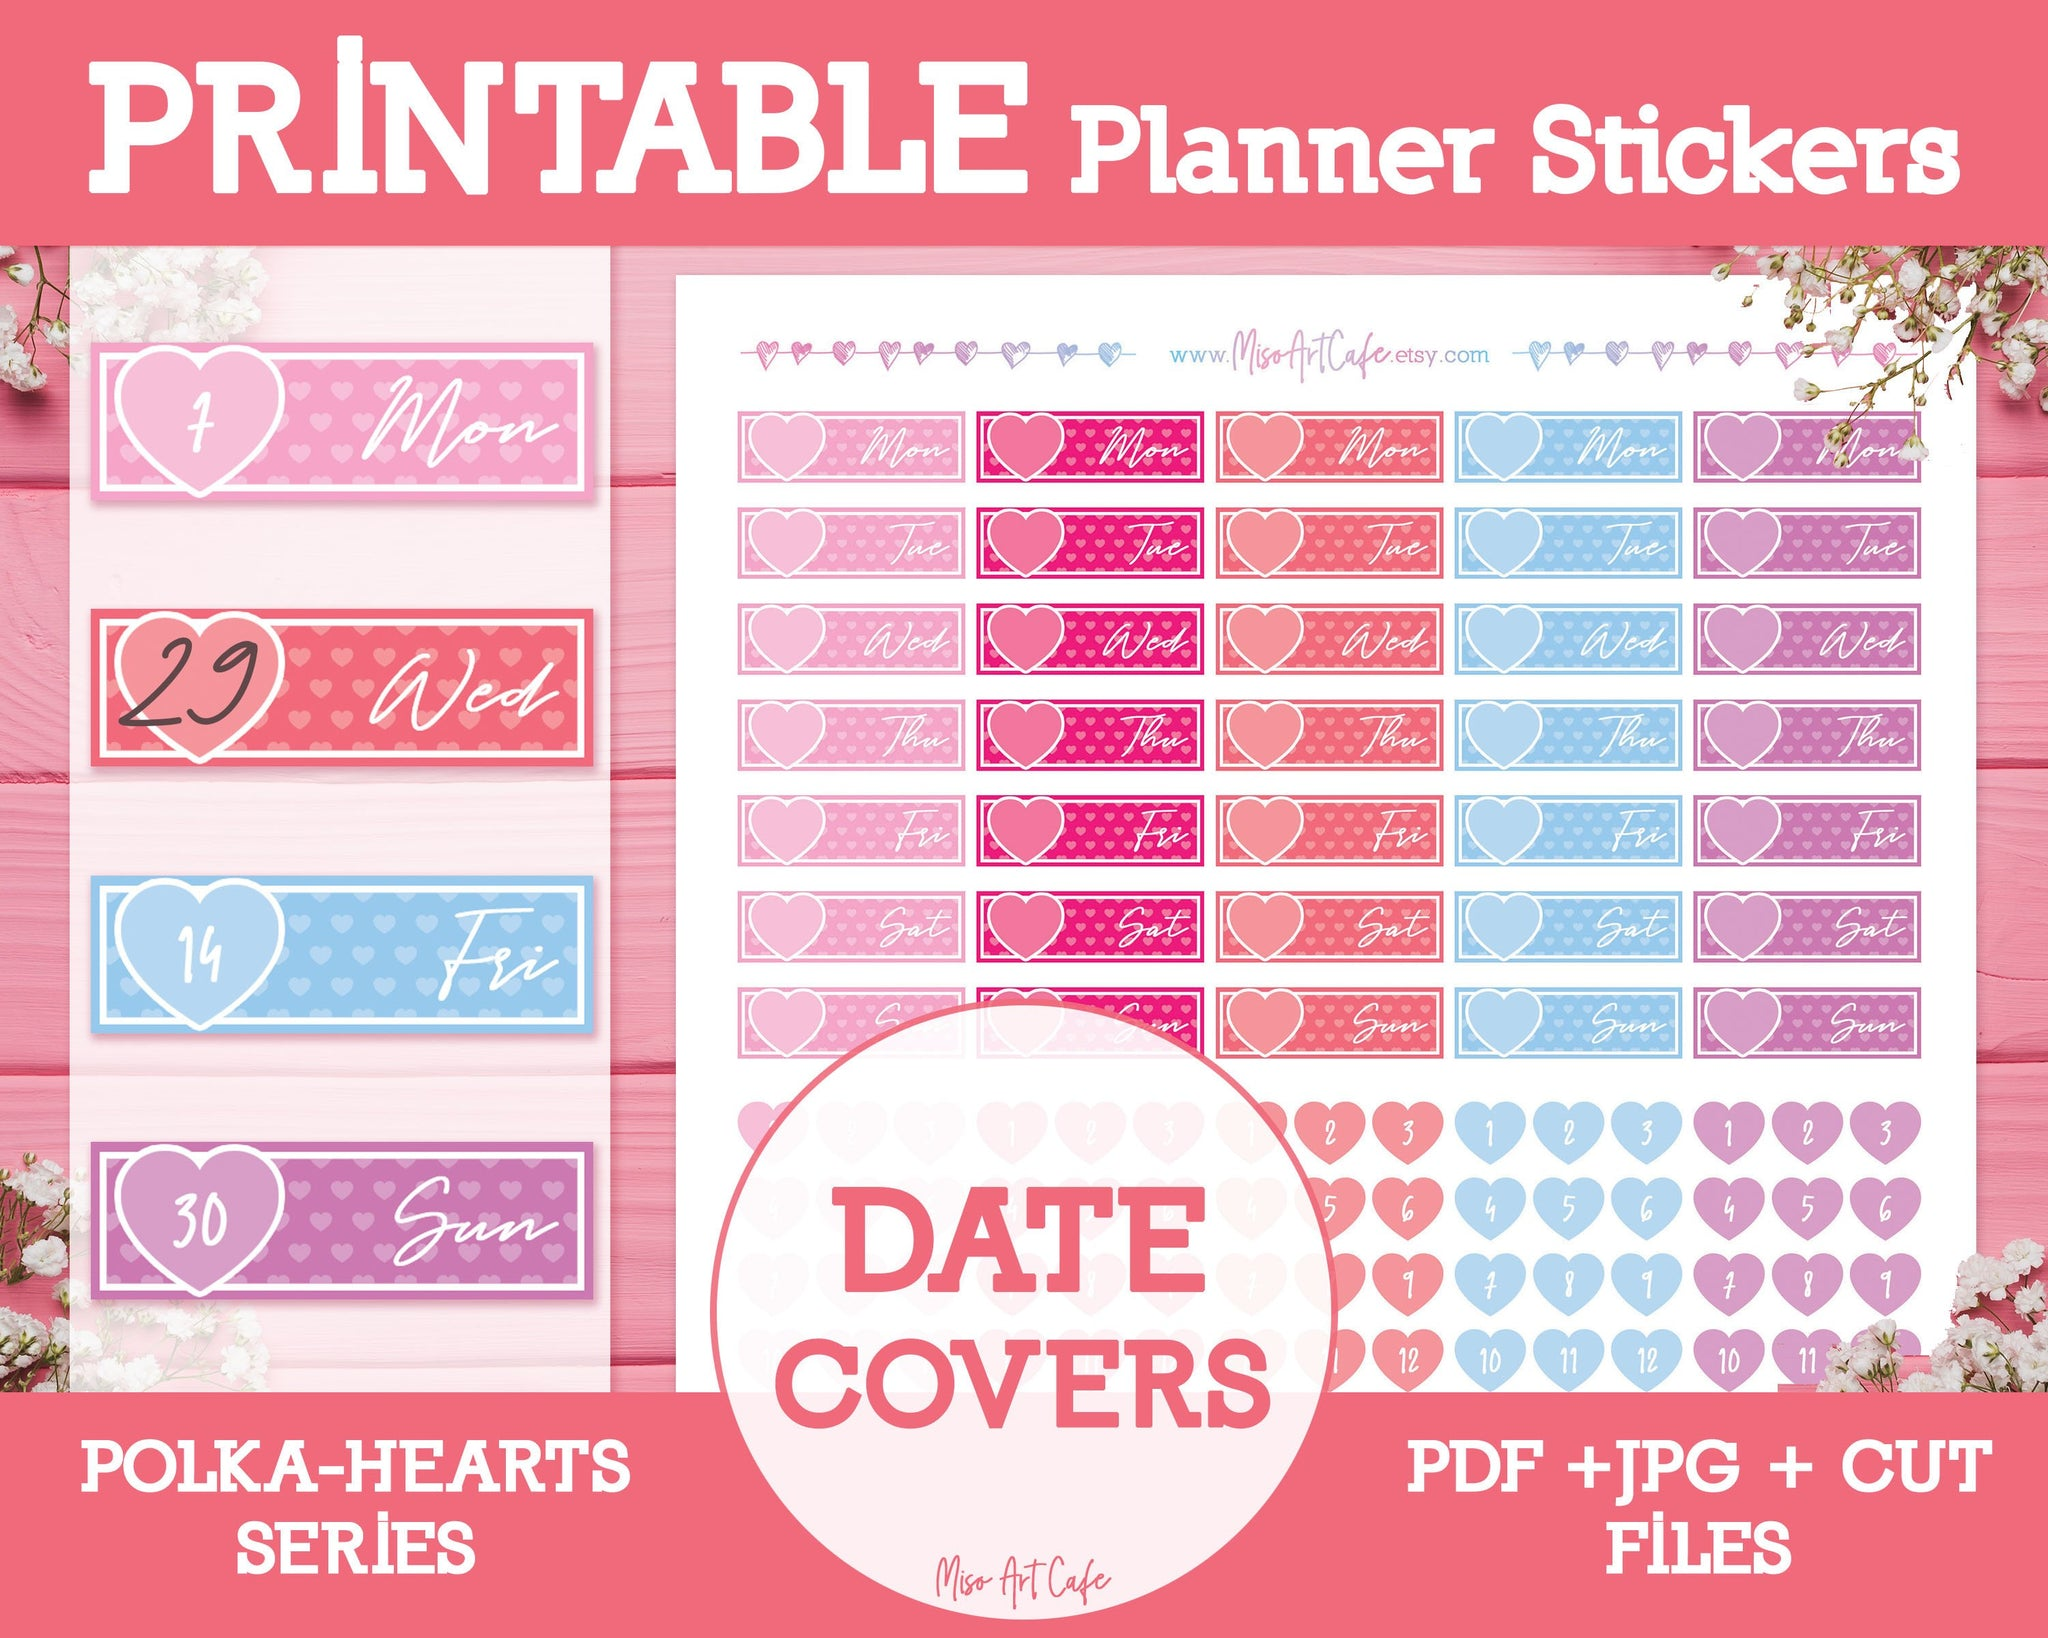 Printable Date Covers - Polka Hearts Planner Stickers - Miso Art Cafe